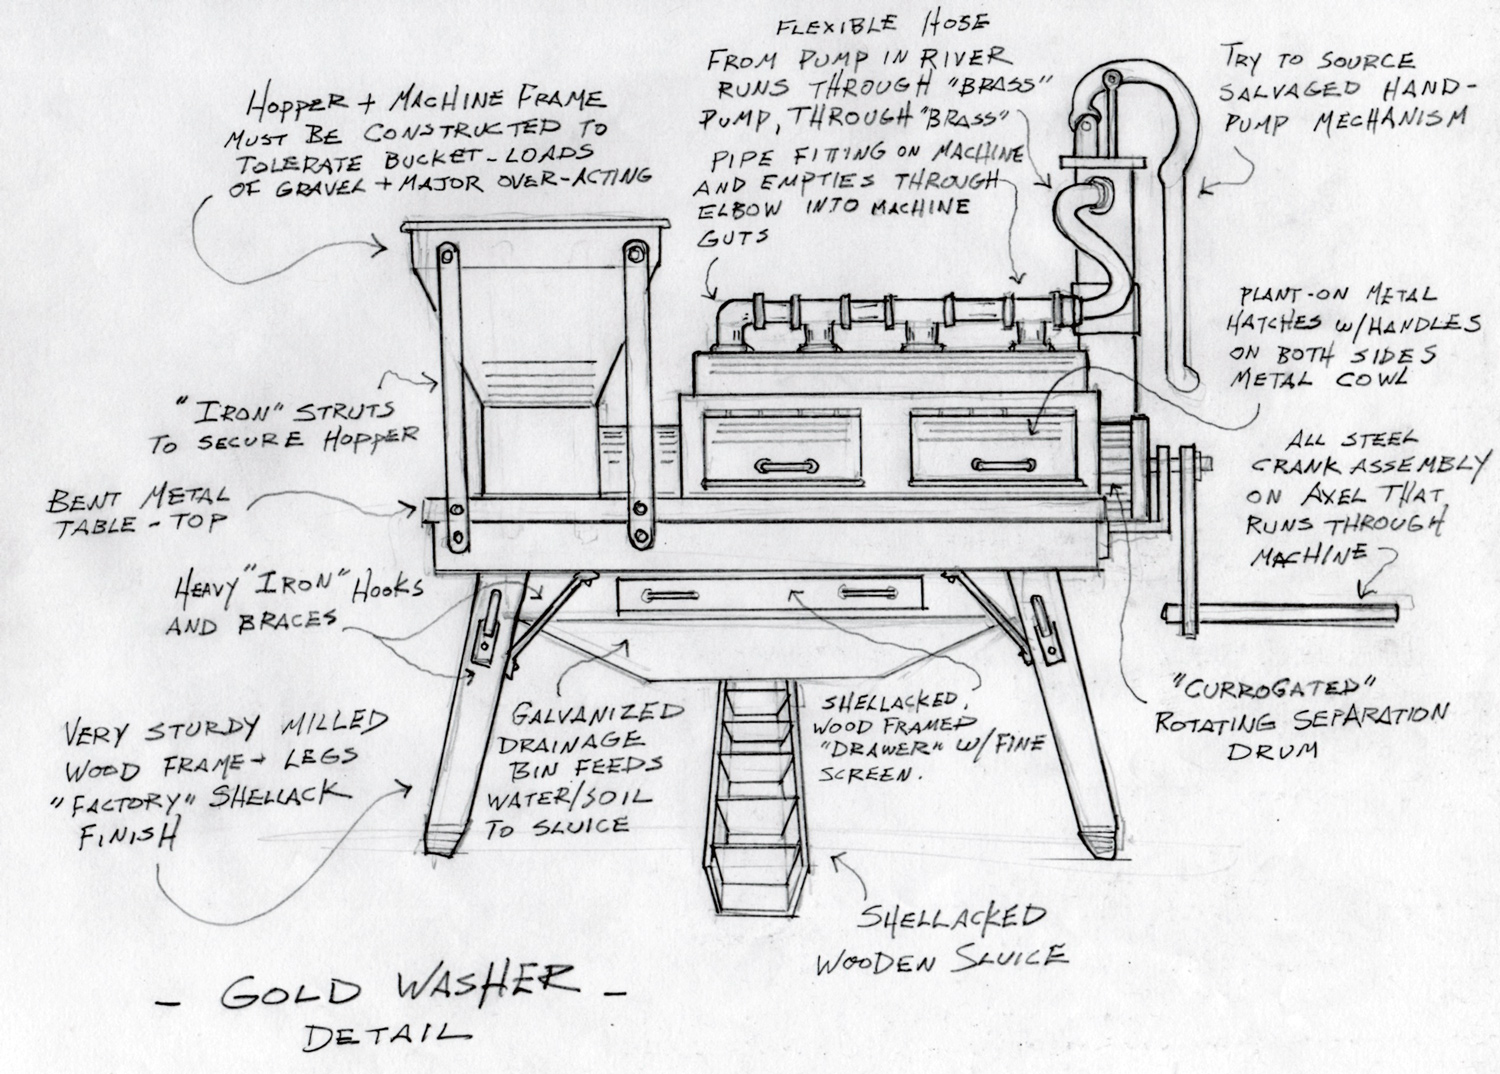 This is a sketch of a Gold Washer, an expensive device that promised to do the work of hundreds of men panning for gold in river sediment. Like most of these devices, it didn't work. We built an approximation of a gold washer extrapolated from what few research images we could find.